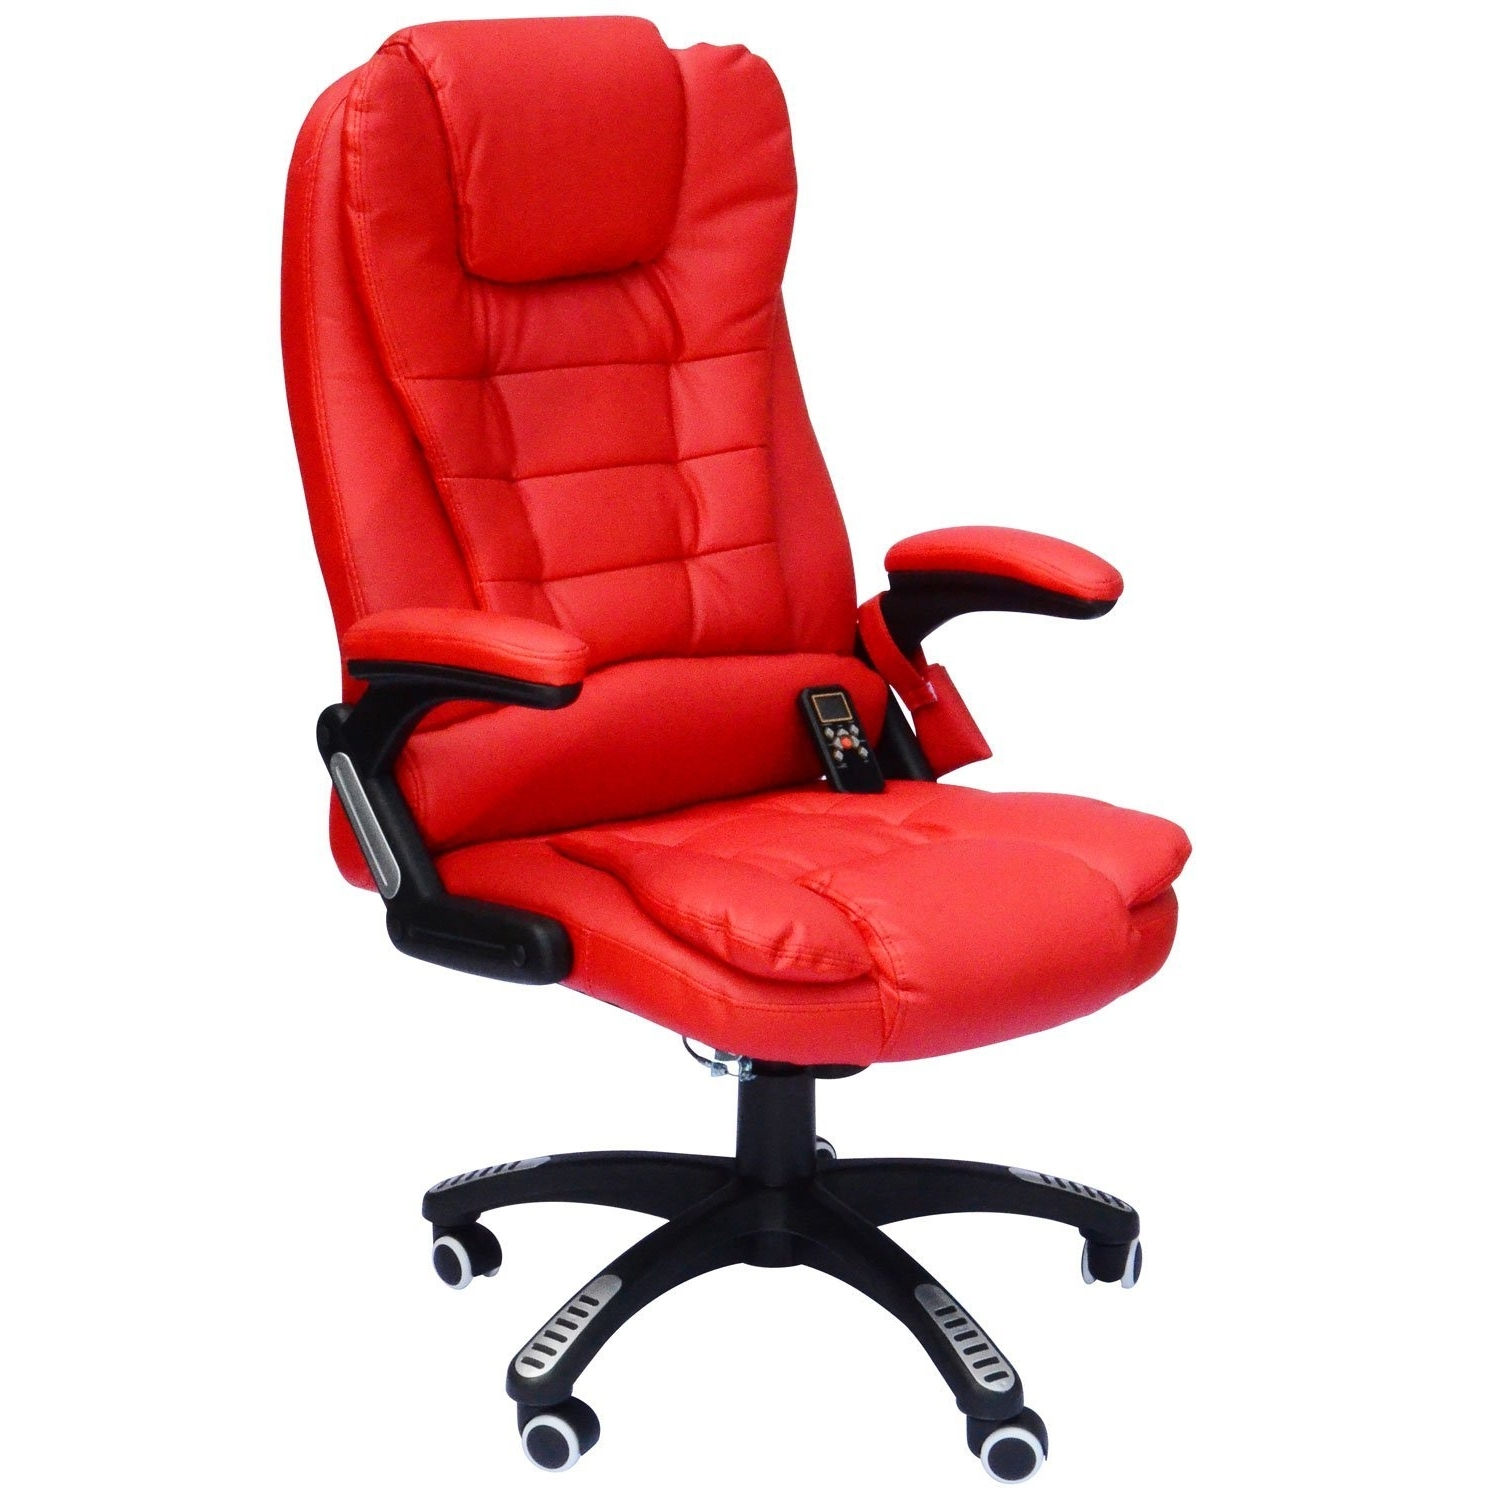 Executive Office Side Chairs For Well Known Furniture : Office Side Chairs Office Chair Replacement Parts (View 5 of 20)